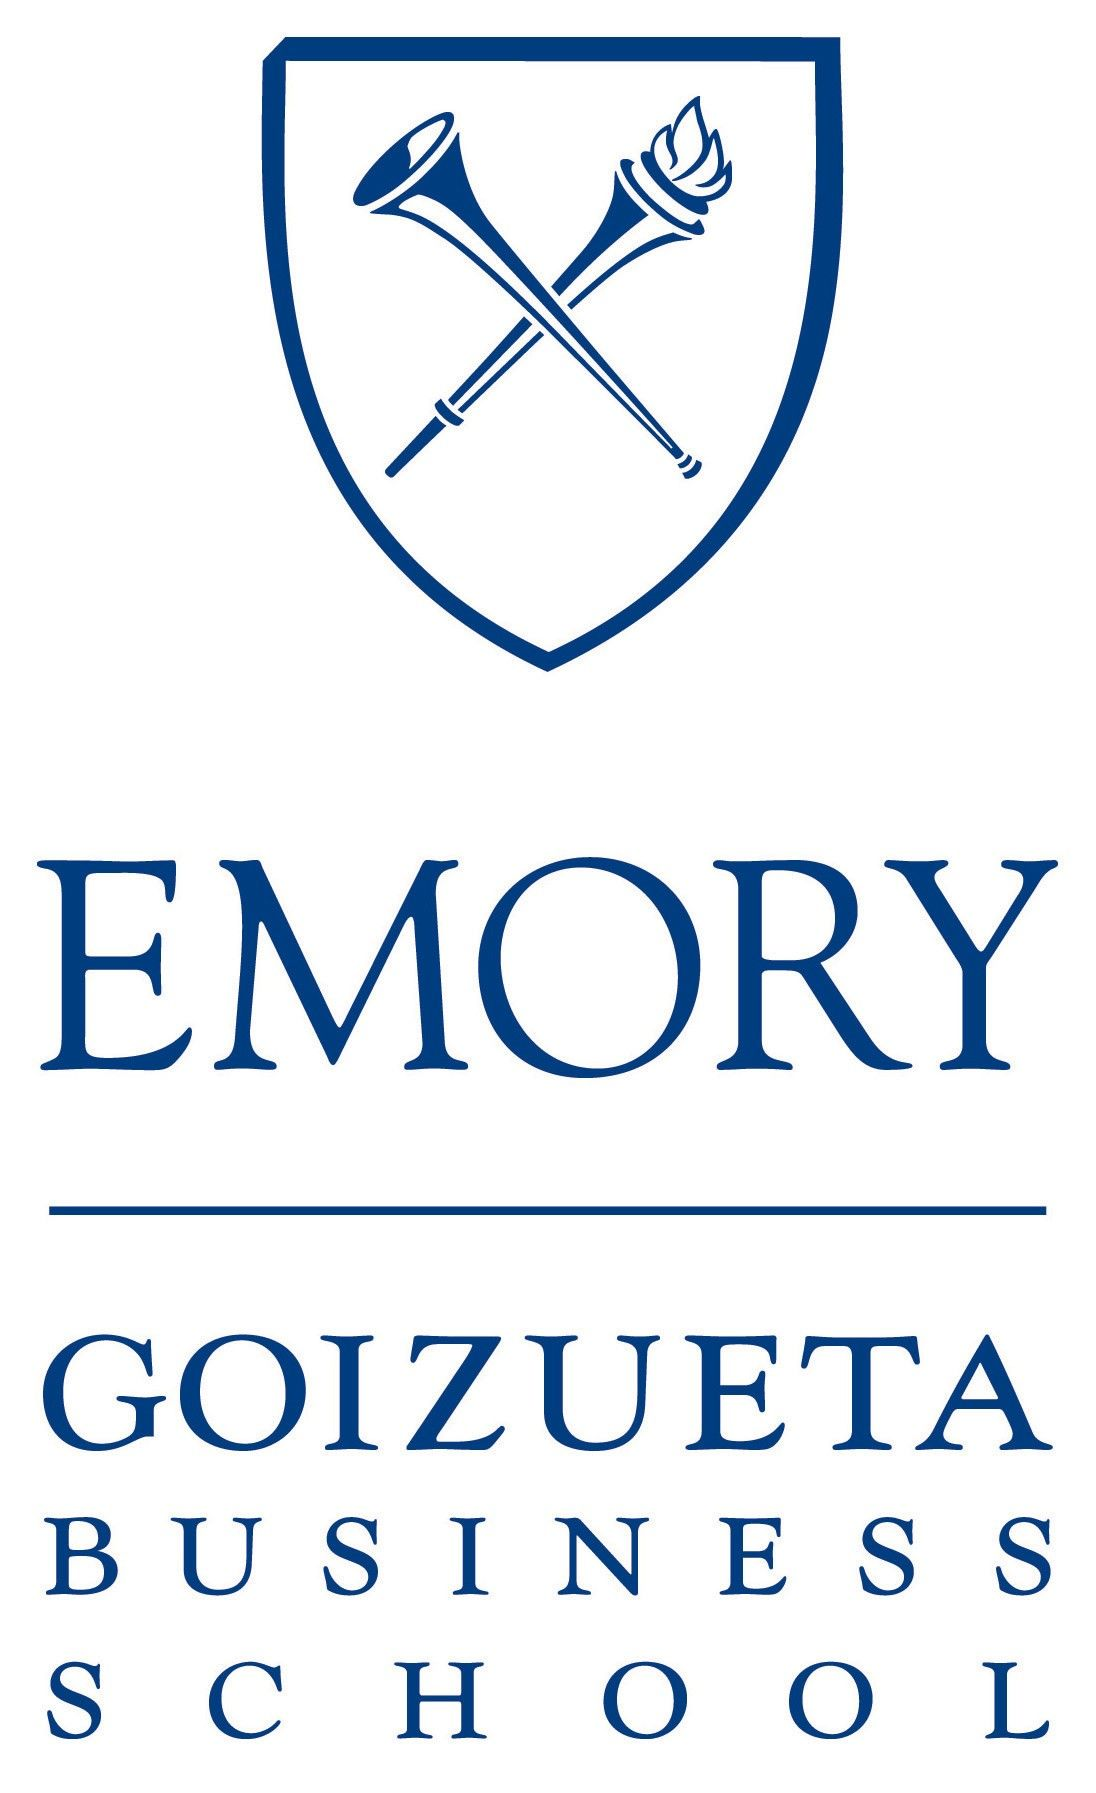 emory mba essay 2013 Learn about the mba programs at emory - goizueta and other business schools in georgia get info about gmat scores, scholarships, and mba tuition.